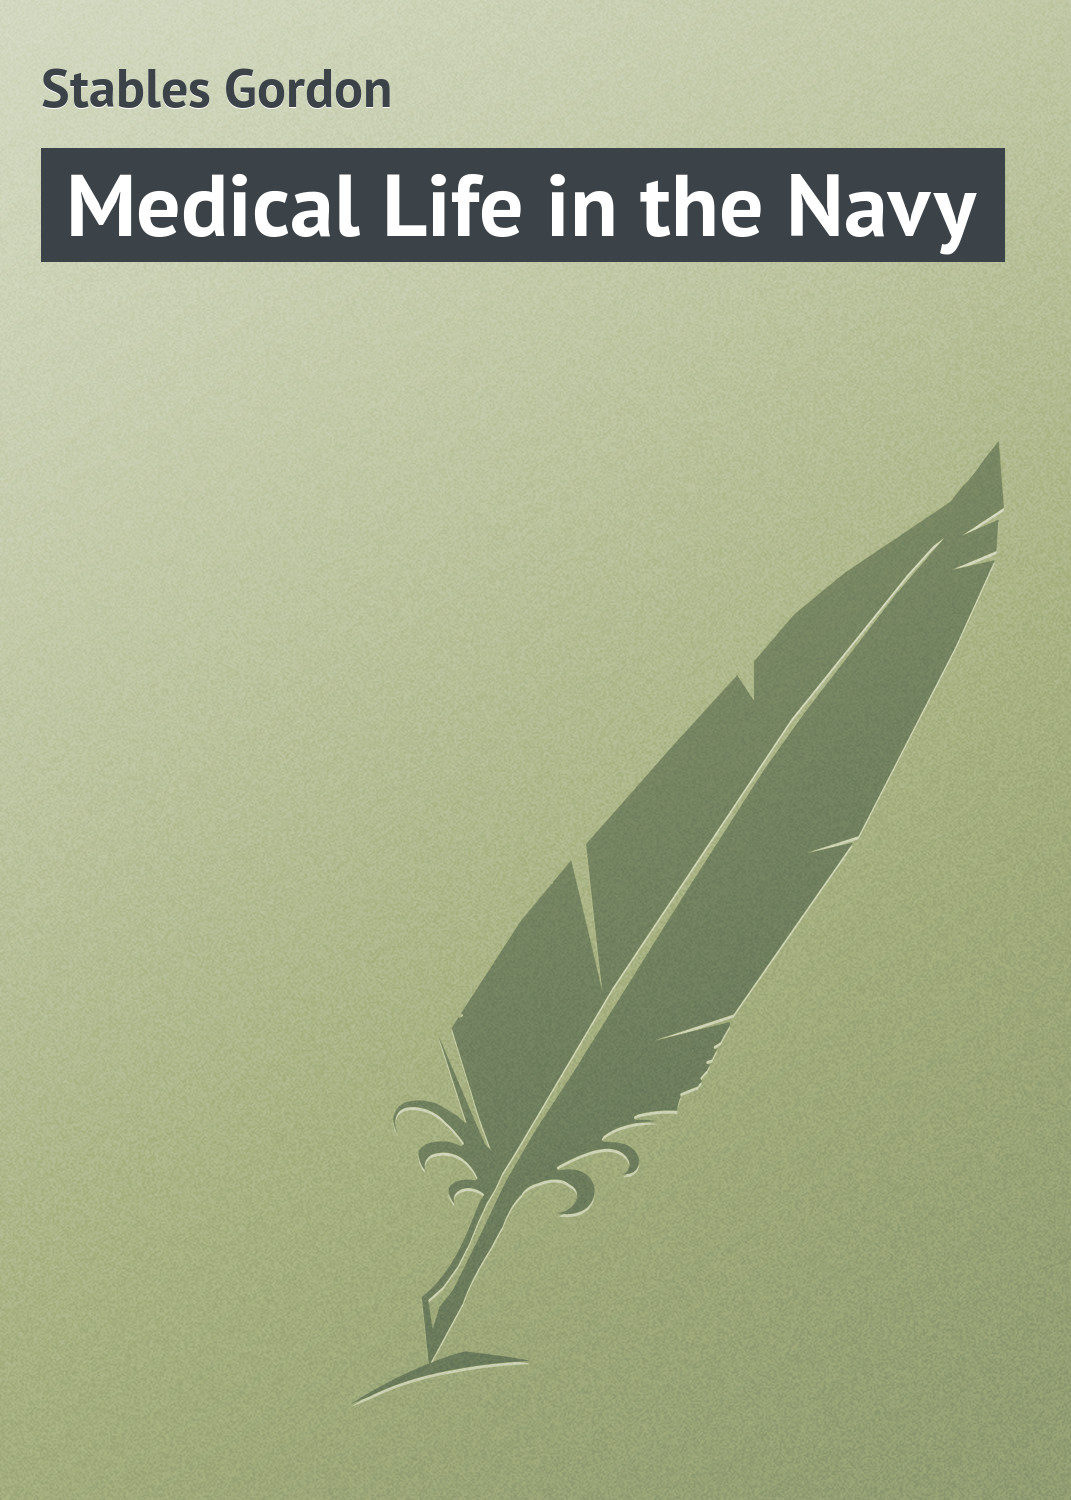 цена Stables Gordon Medical Life in the Navy онлайн в 2017 году